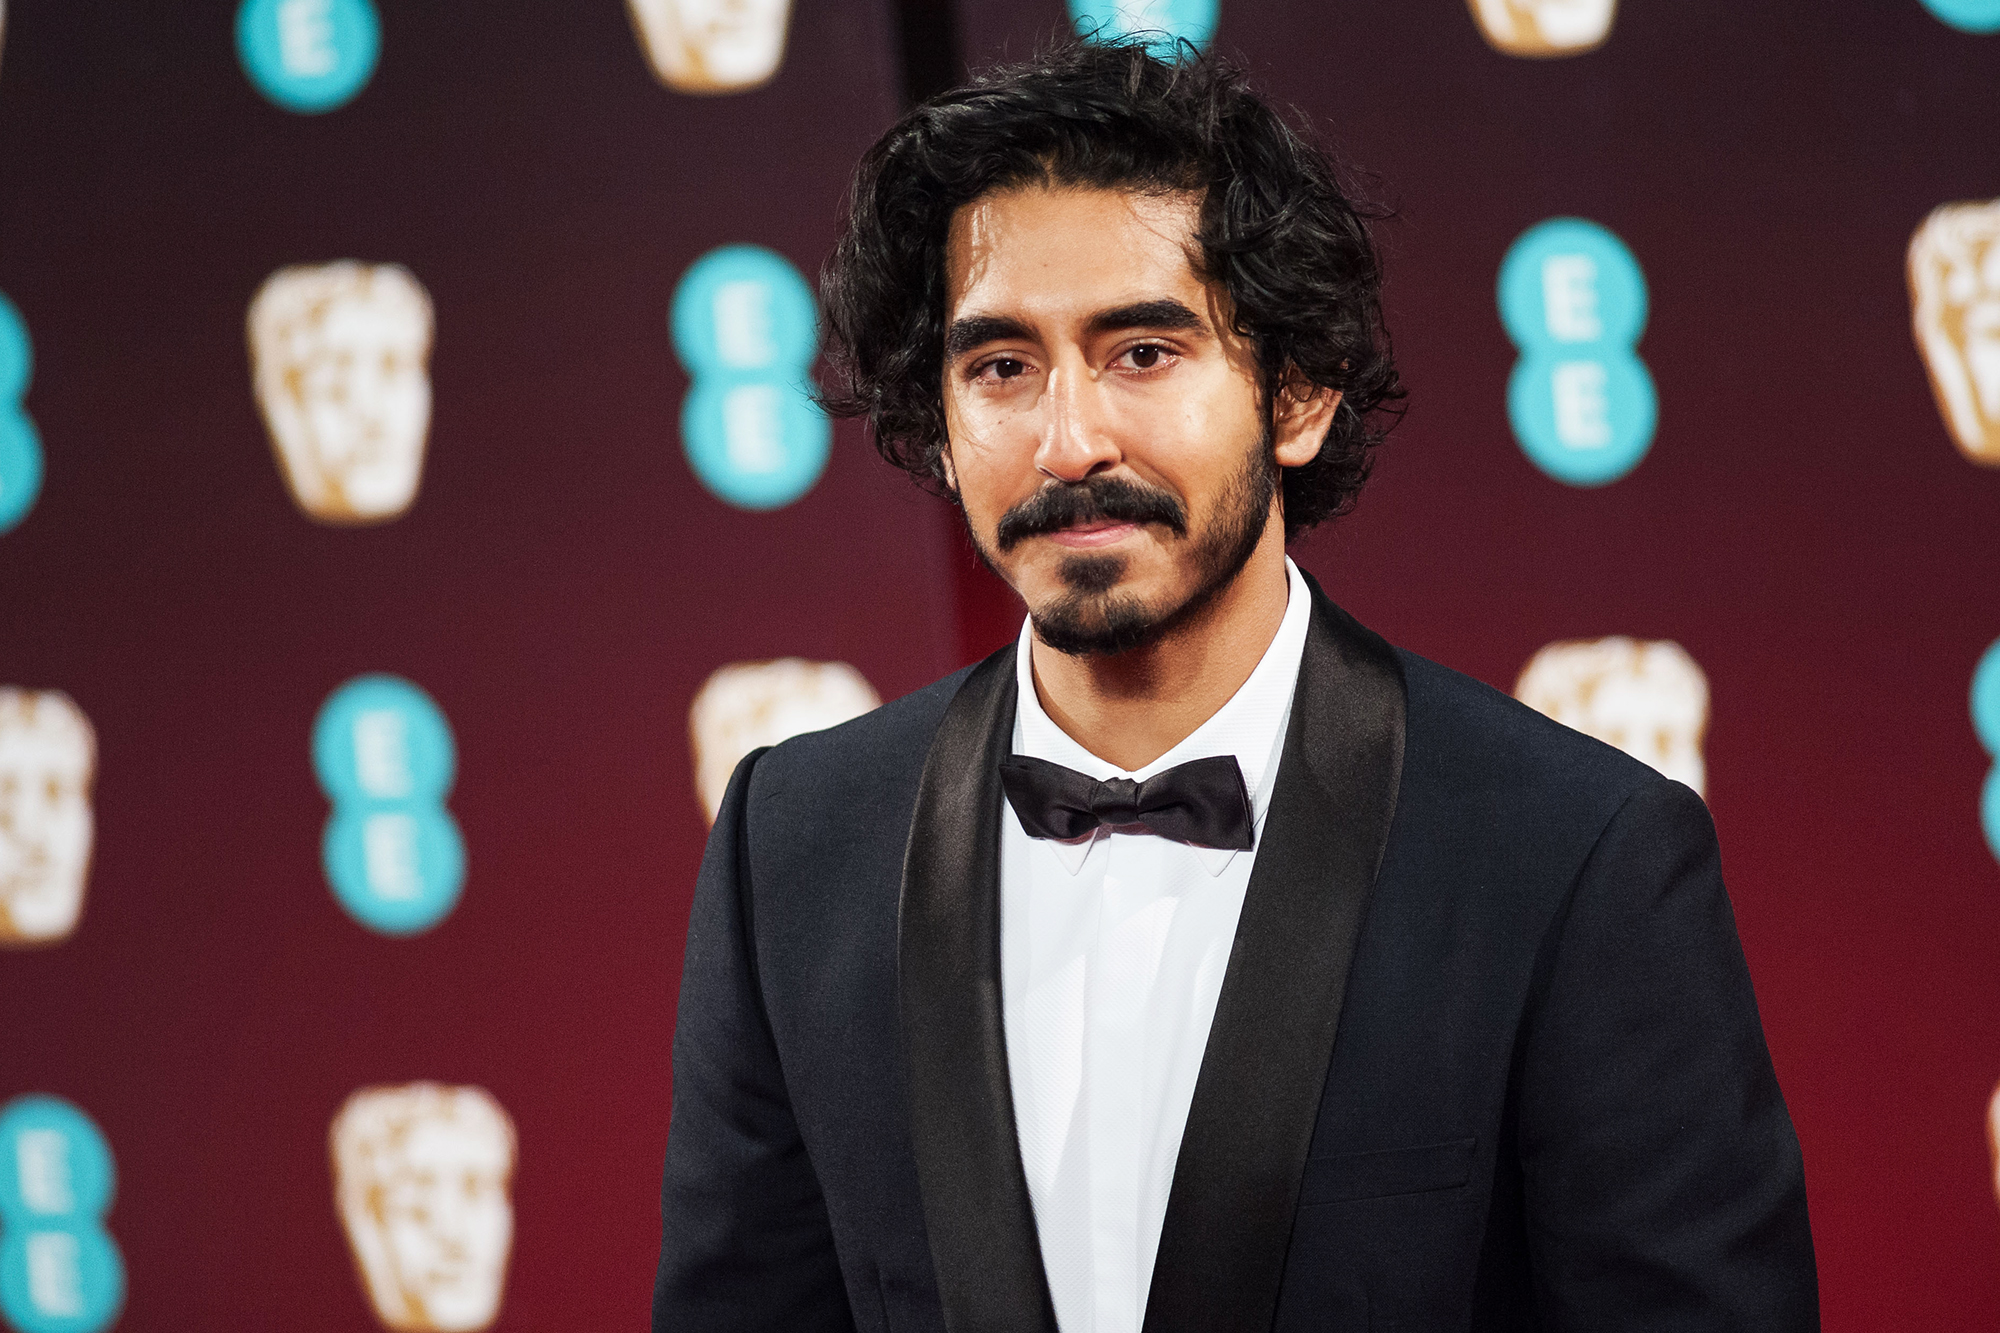 Dev Patel attends the 70th British Academy Film Awards ceremony at the Royal Albert Hall, on Feb. 12, 2017 in London.